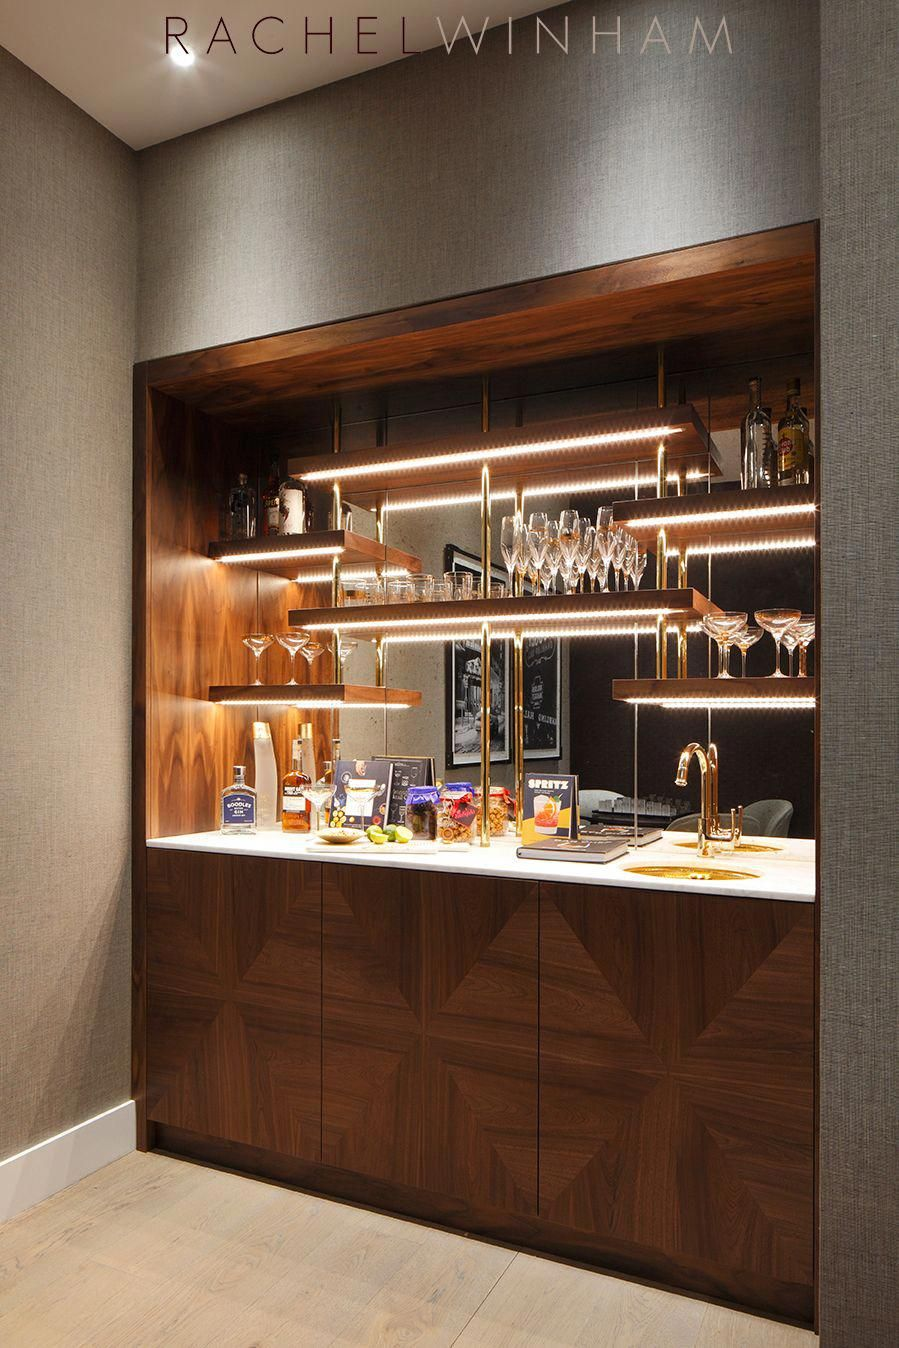 Acquire Fantastic Suggestions On Bar Furniture They Are Actually On Call For You On Our Site Barfurniture Wohnzimmer Bar Hausbar Mobel Wohnung Bar